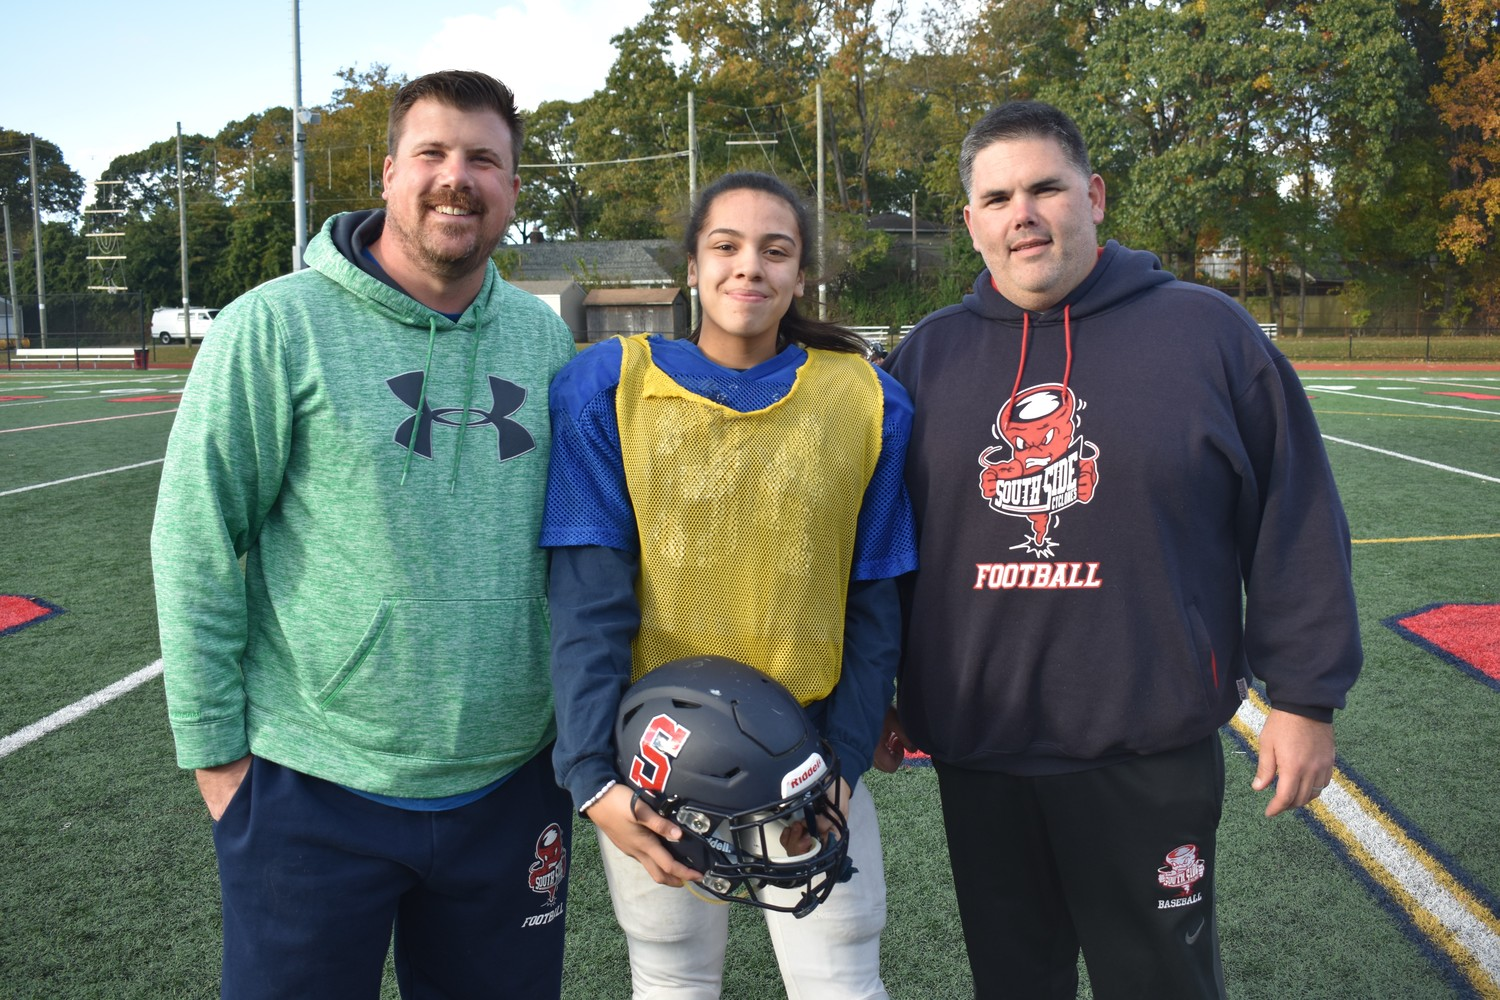 Olivia Medford, with junior varsity co-coaches Keith Bosch, left, and Thomas Smith, who welcomed her to the squad last year.